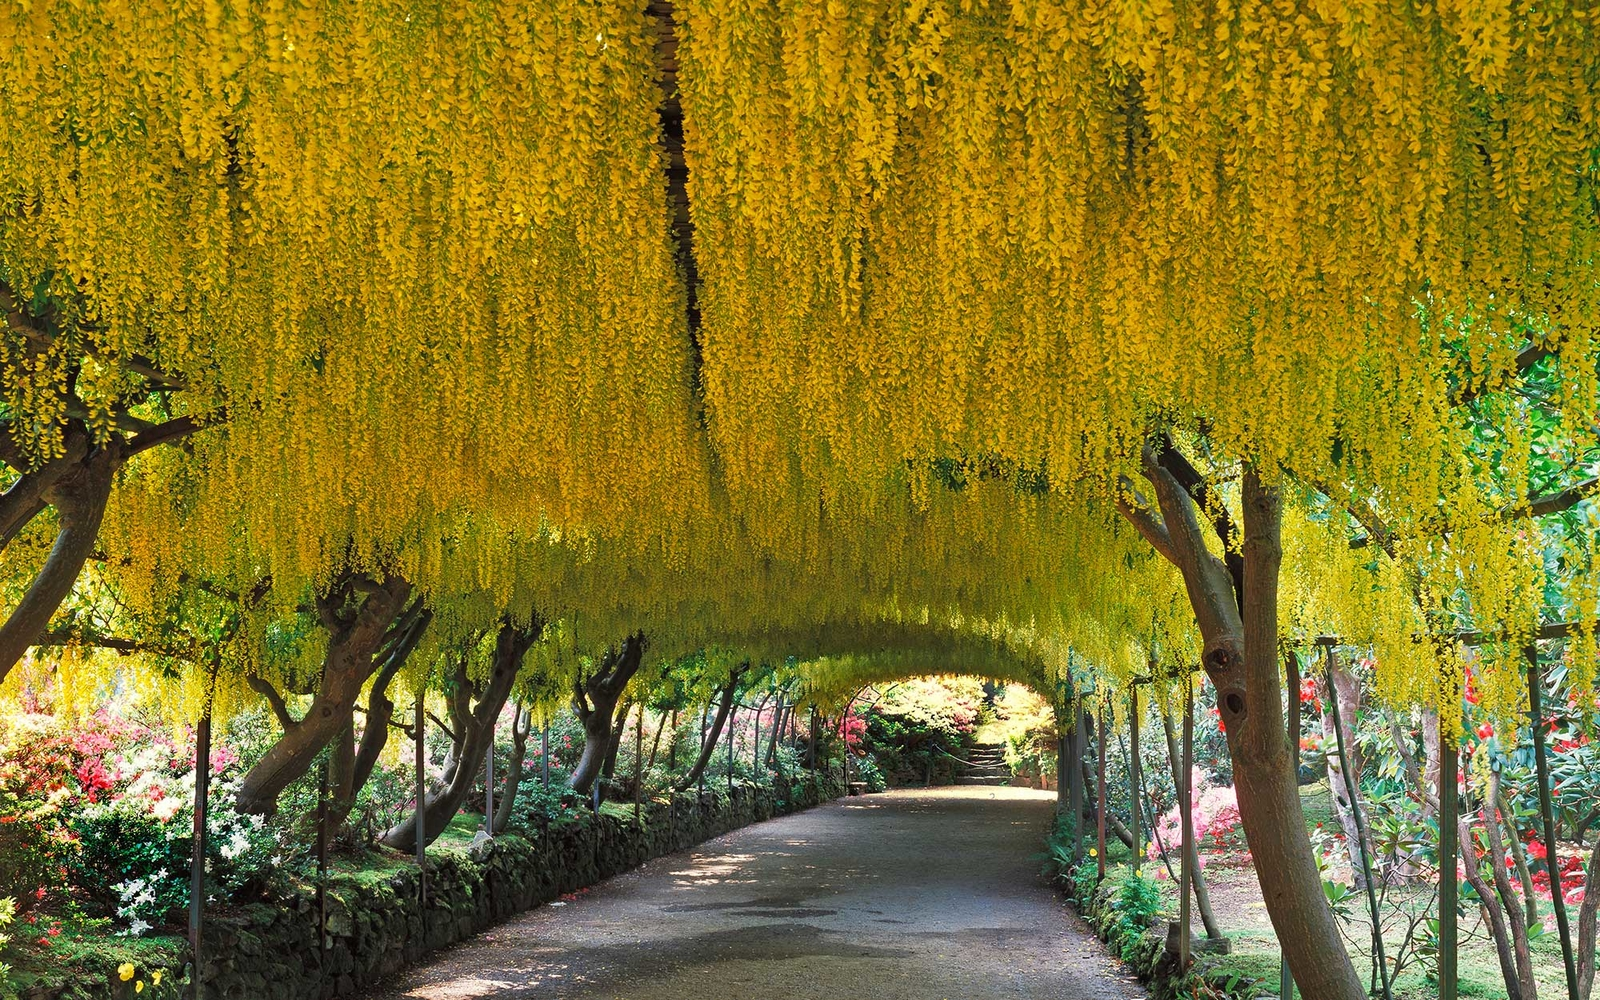 Europe's Most Picturesque Gardens